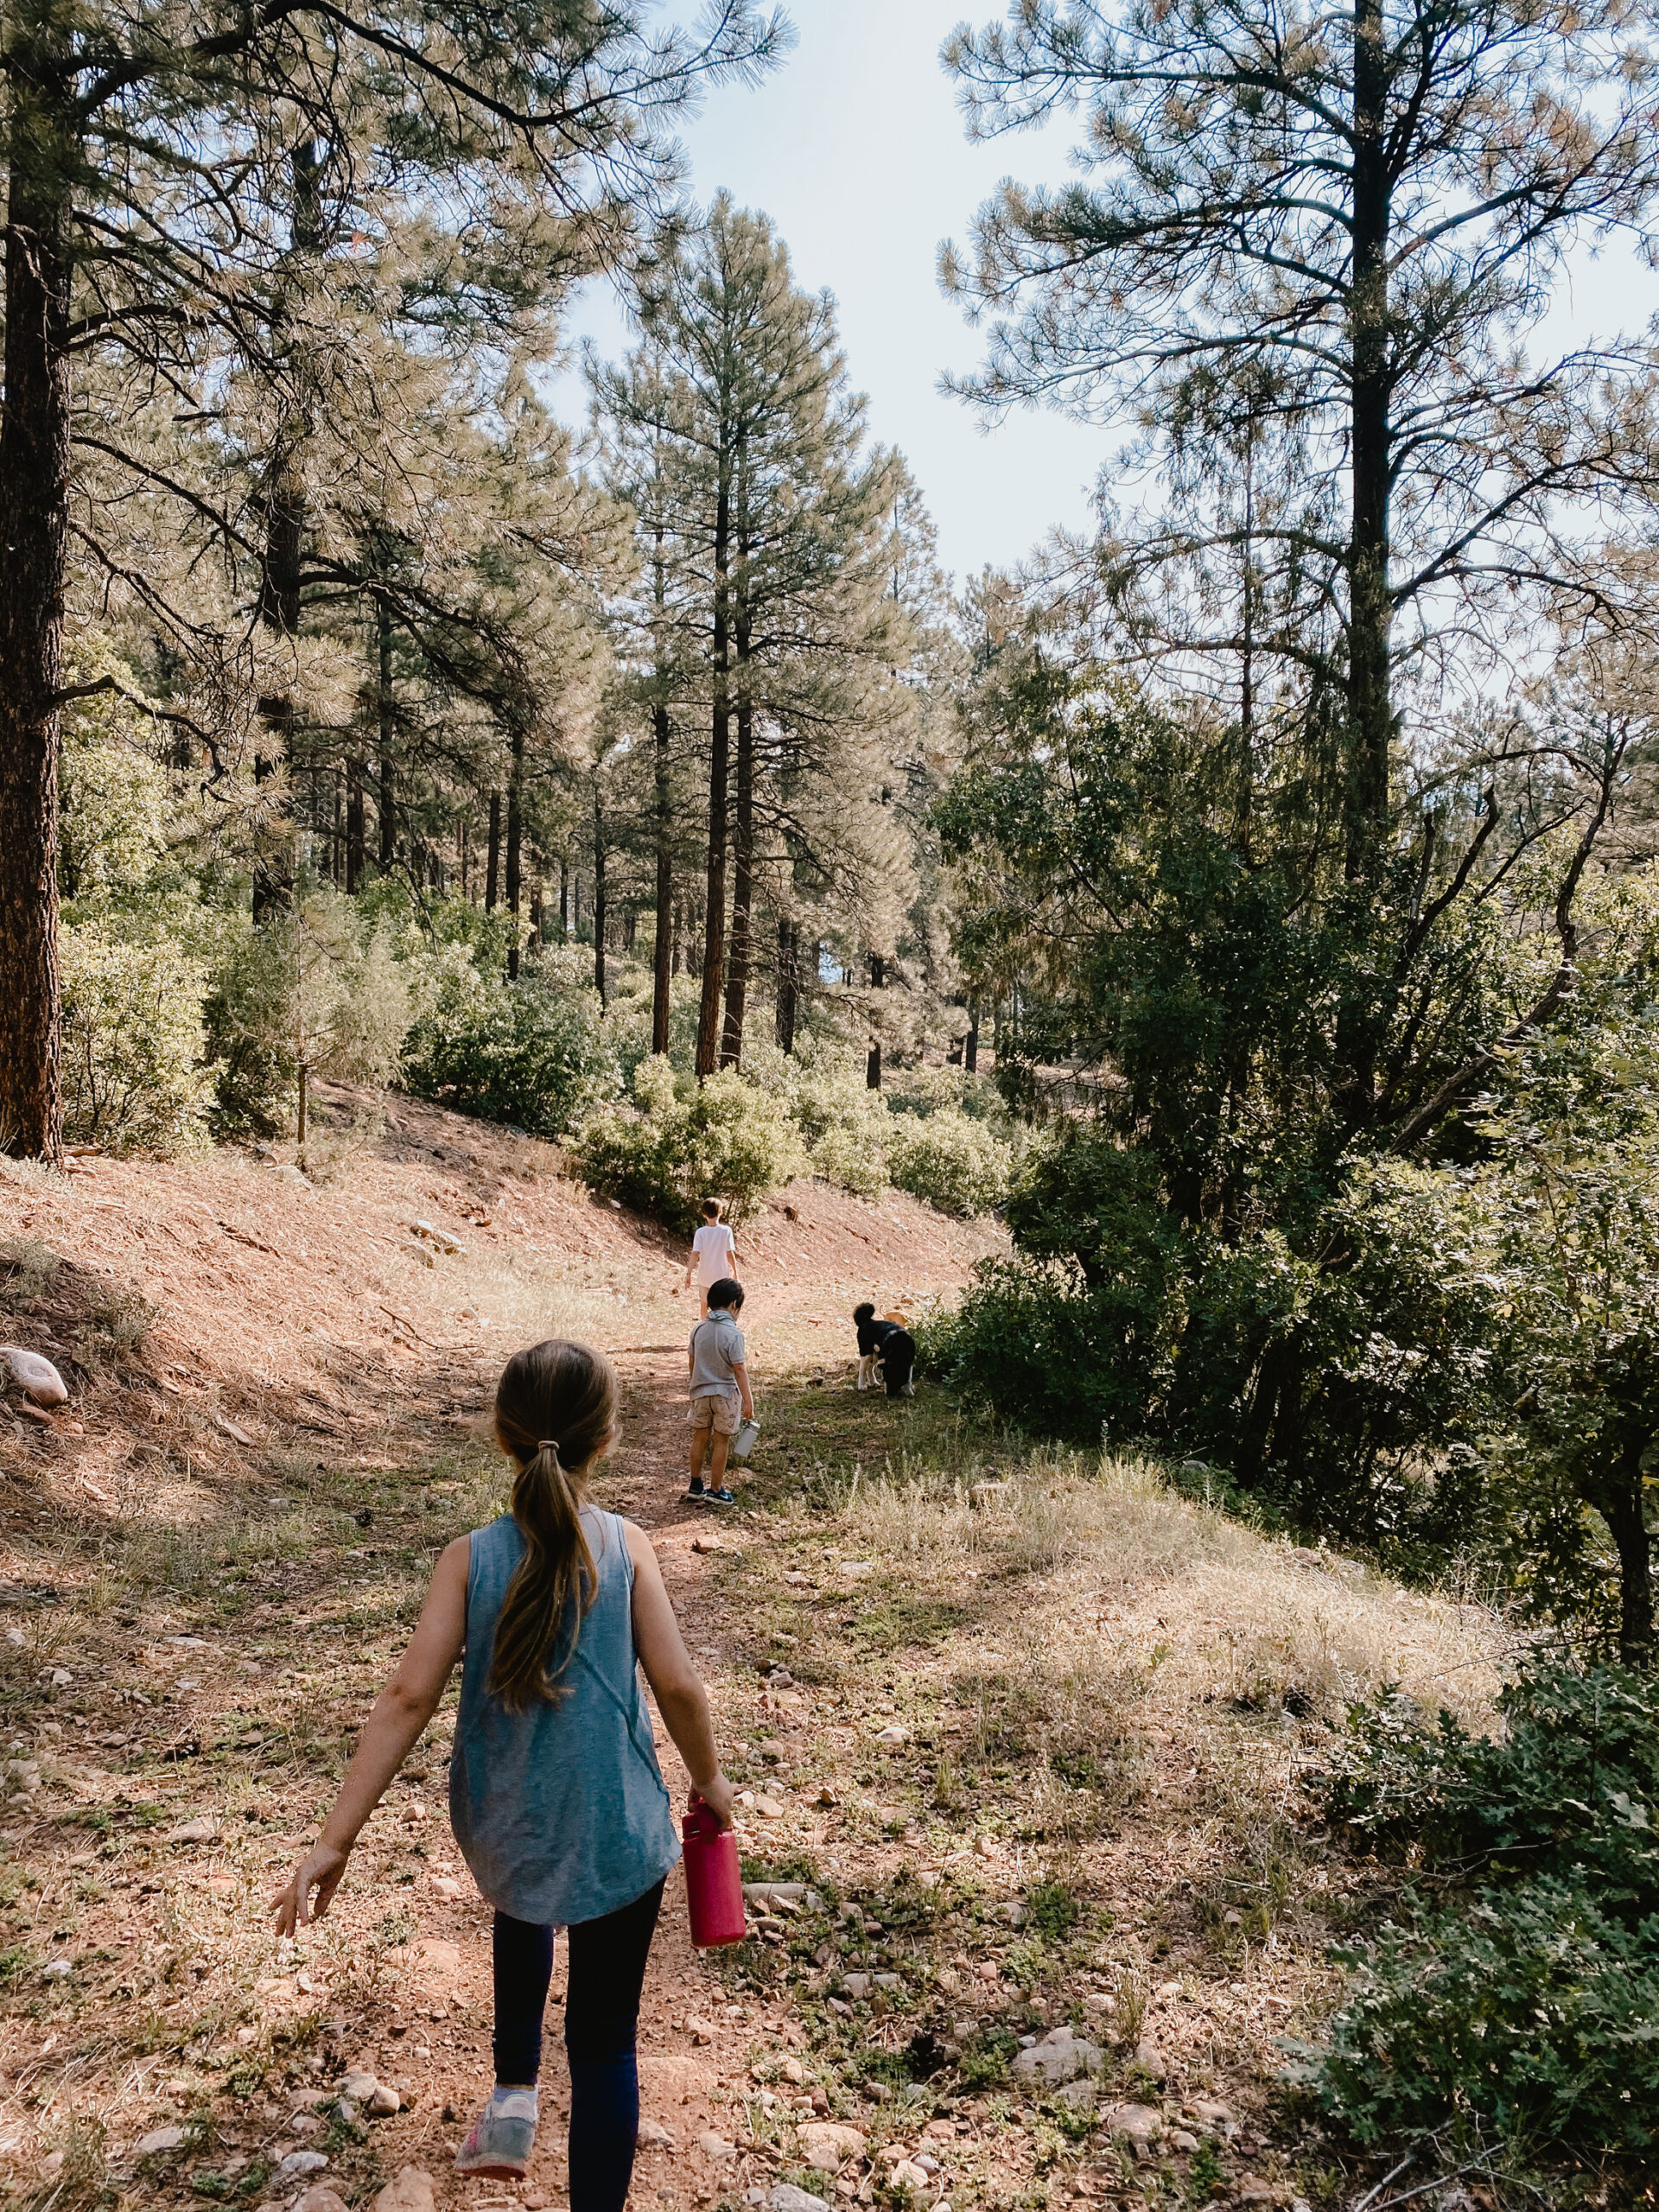 hiking in Durango, Colorado. #coloradomountains #hiking #outdoorswithkids #hikingwithkids